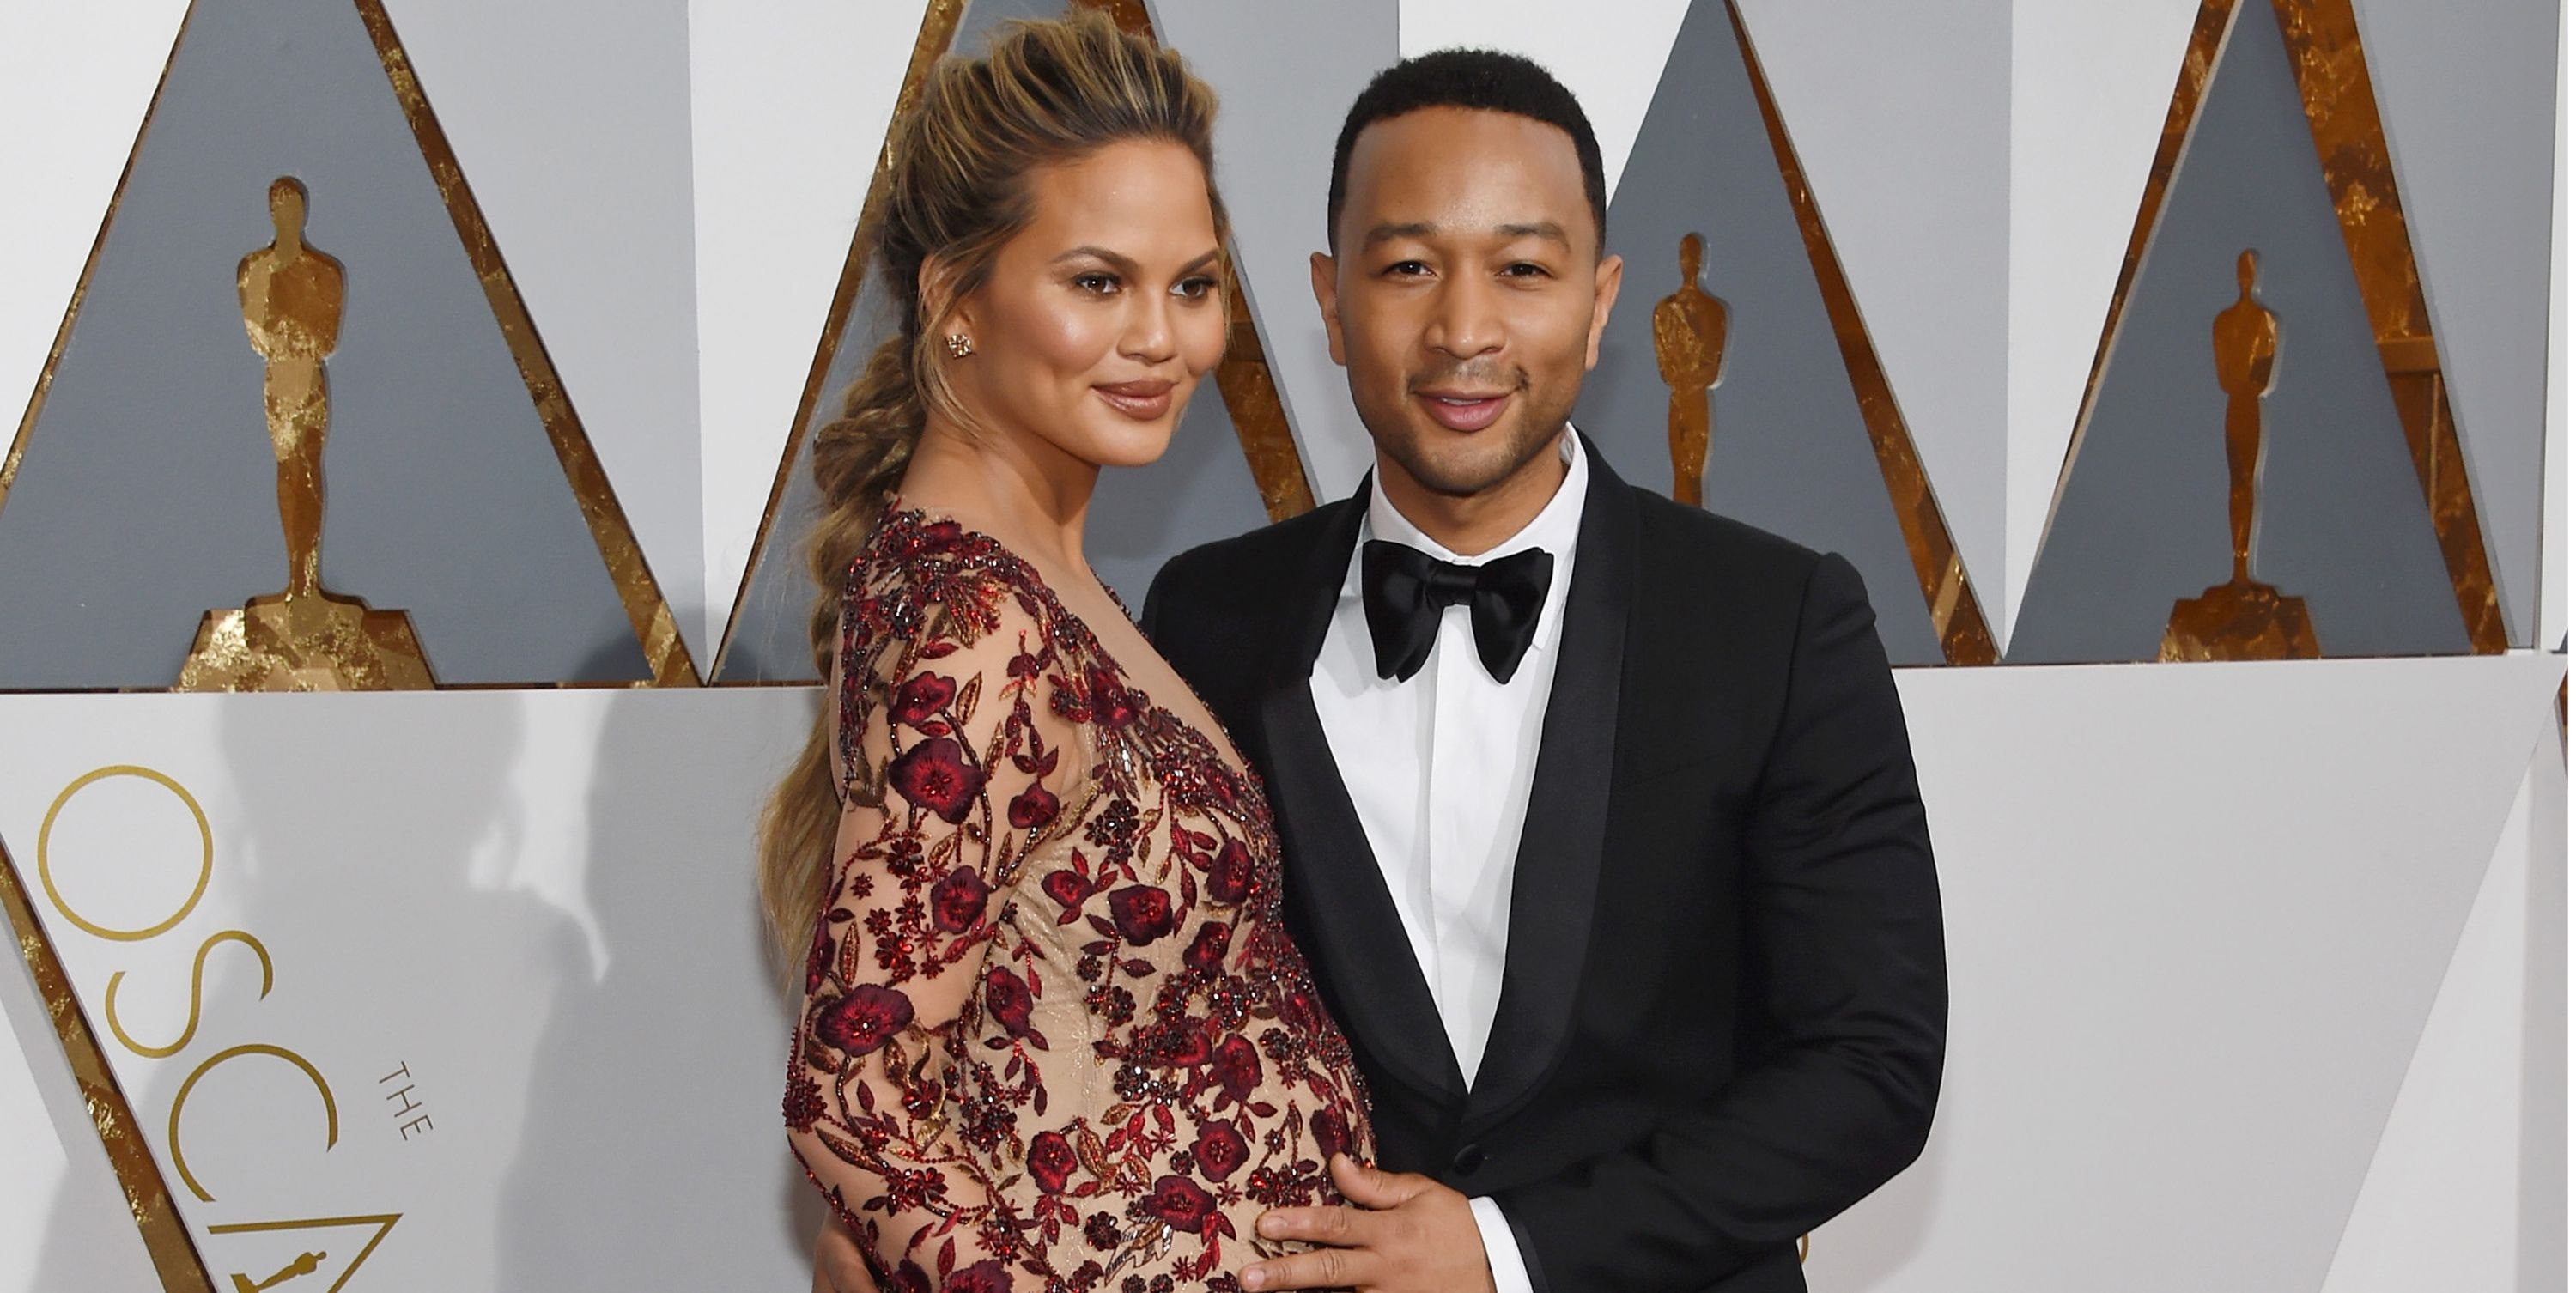 Chrissy Teigen and John Legend who have been open with their fertility struggles and experience with IVF